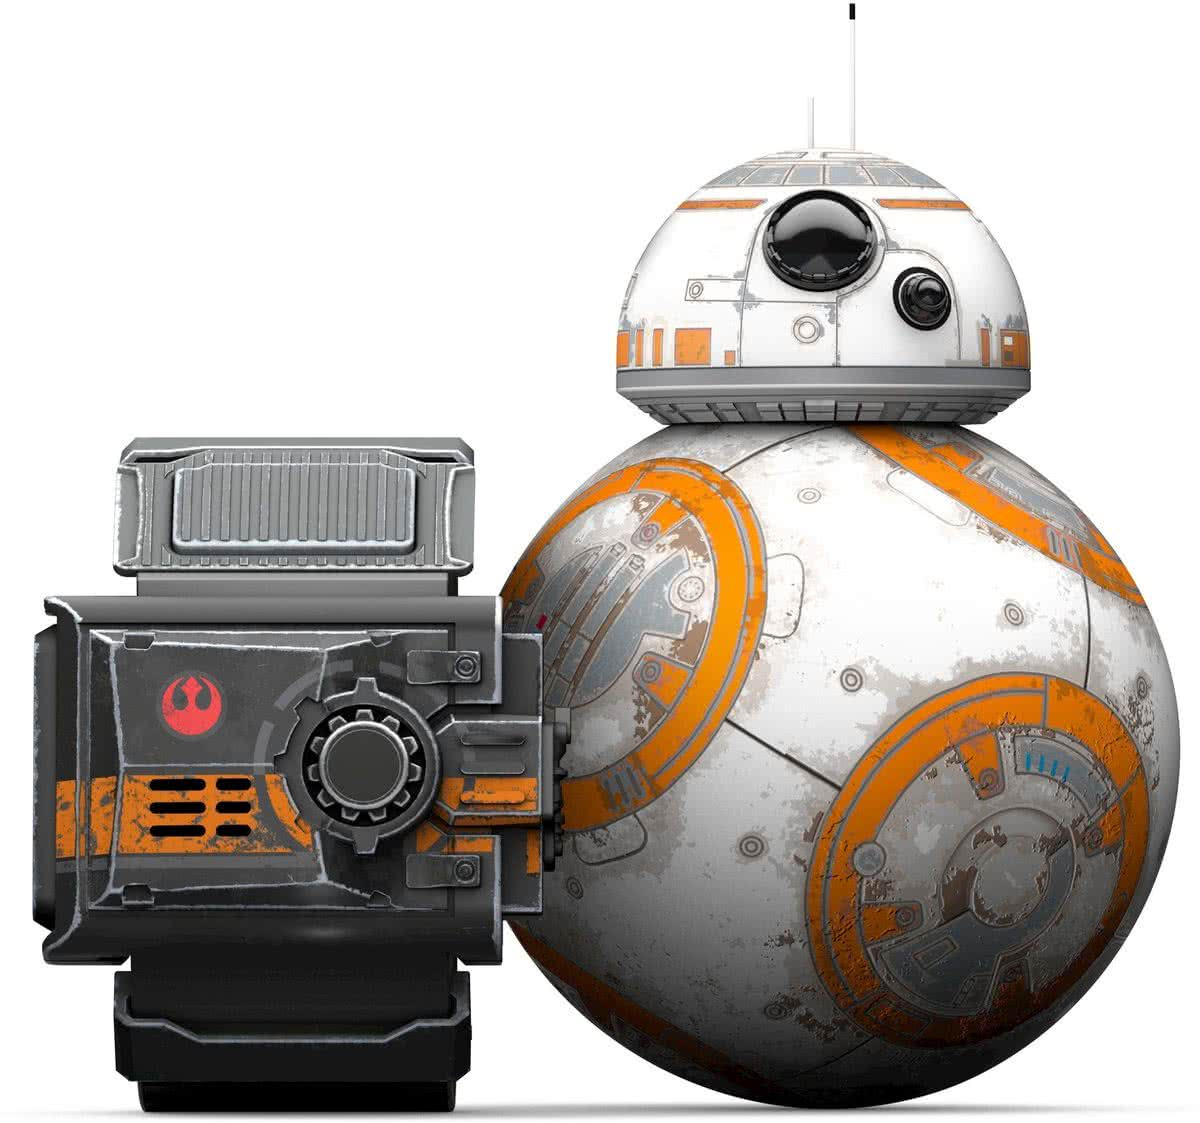 Star Wars Special Edition Battle-Worn BB-8 with Force Band Robot